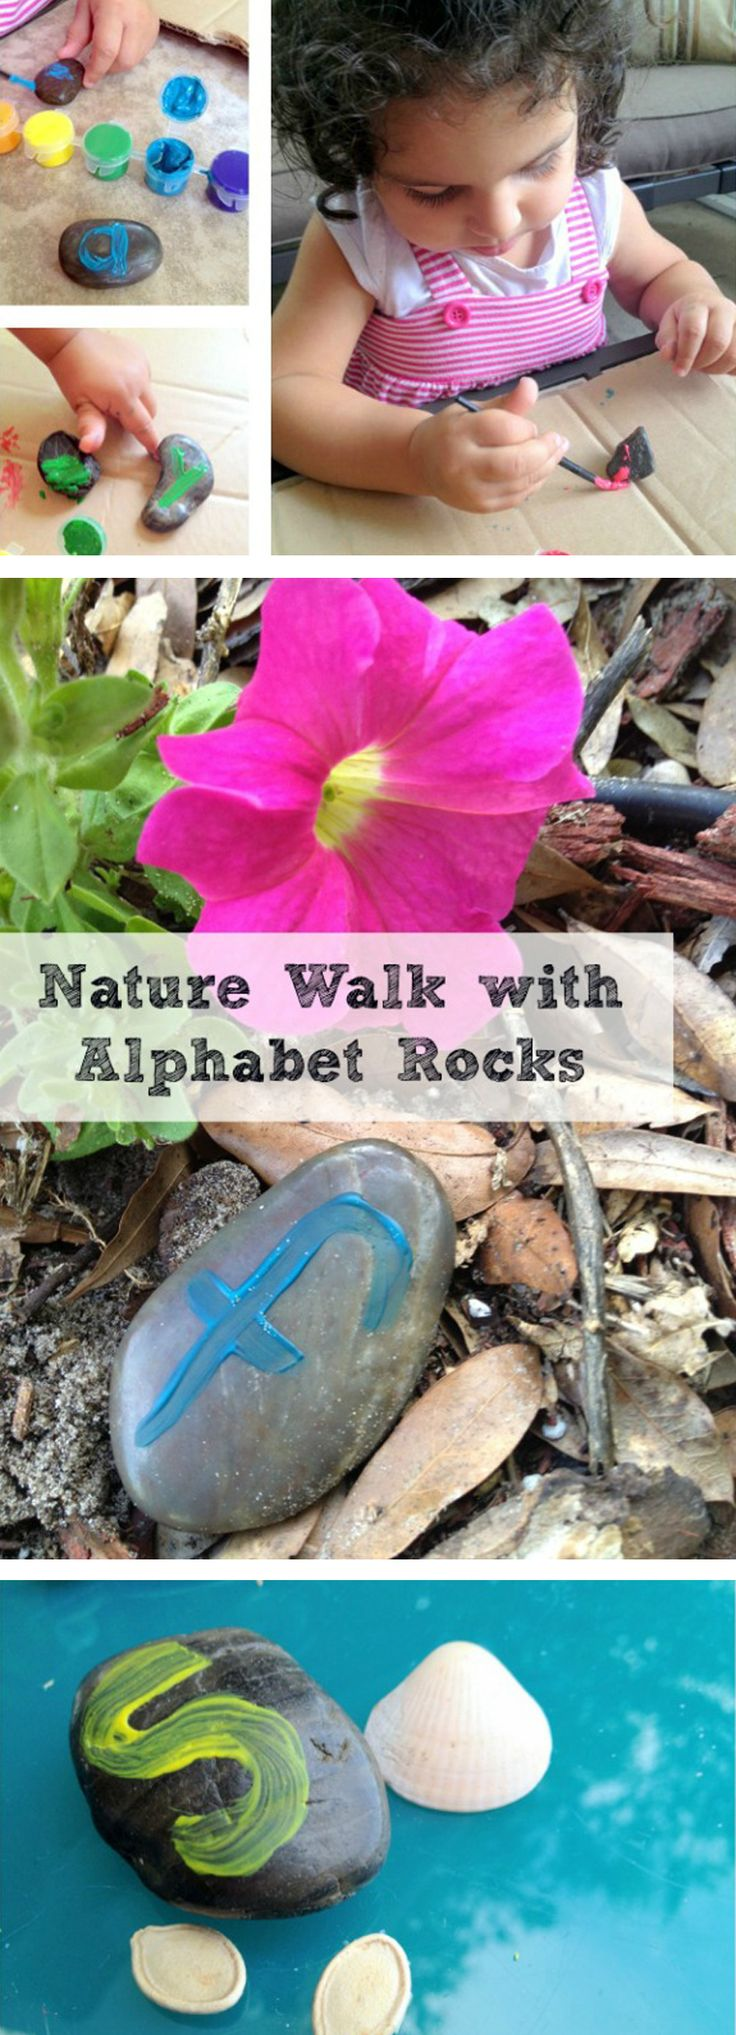 Nature Rocks! - Children's Educational Activity: Summer brings opportunities to create teachable moments even with our youngest learners.  A simple nature walk can build a variety of skills and knowledge in both science and language.